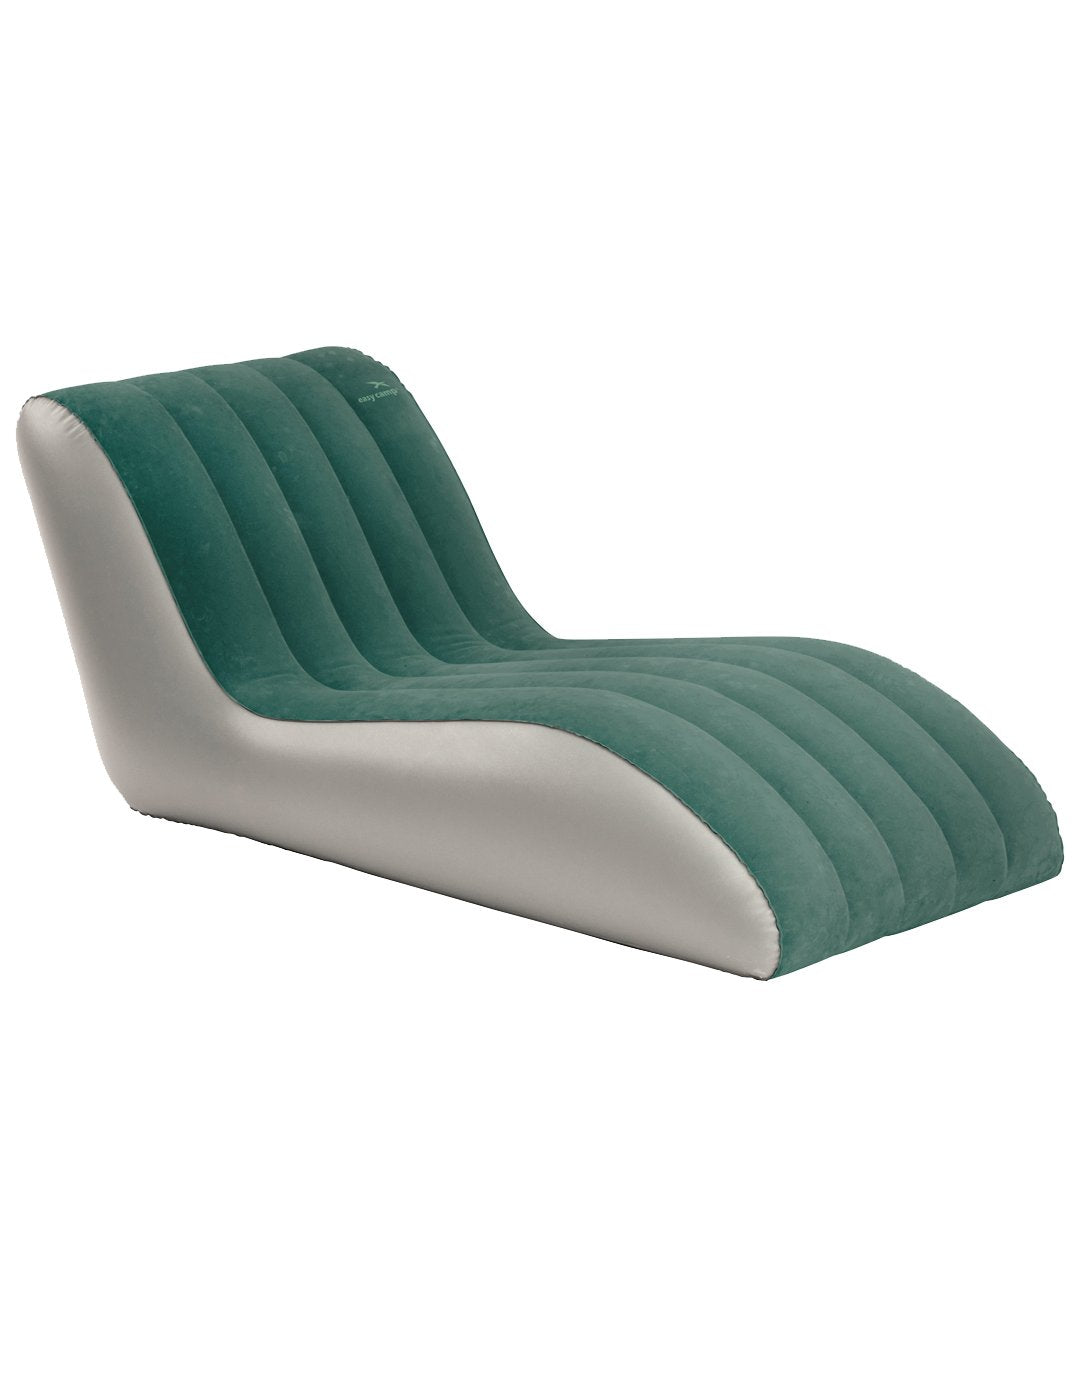 Image of Easy Camp Comfy Lounger